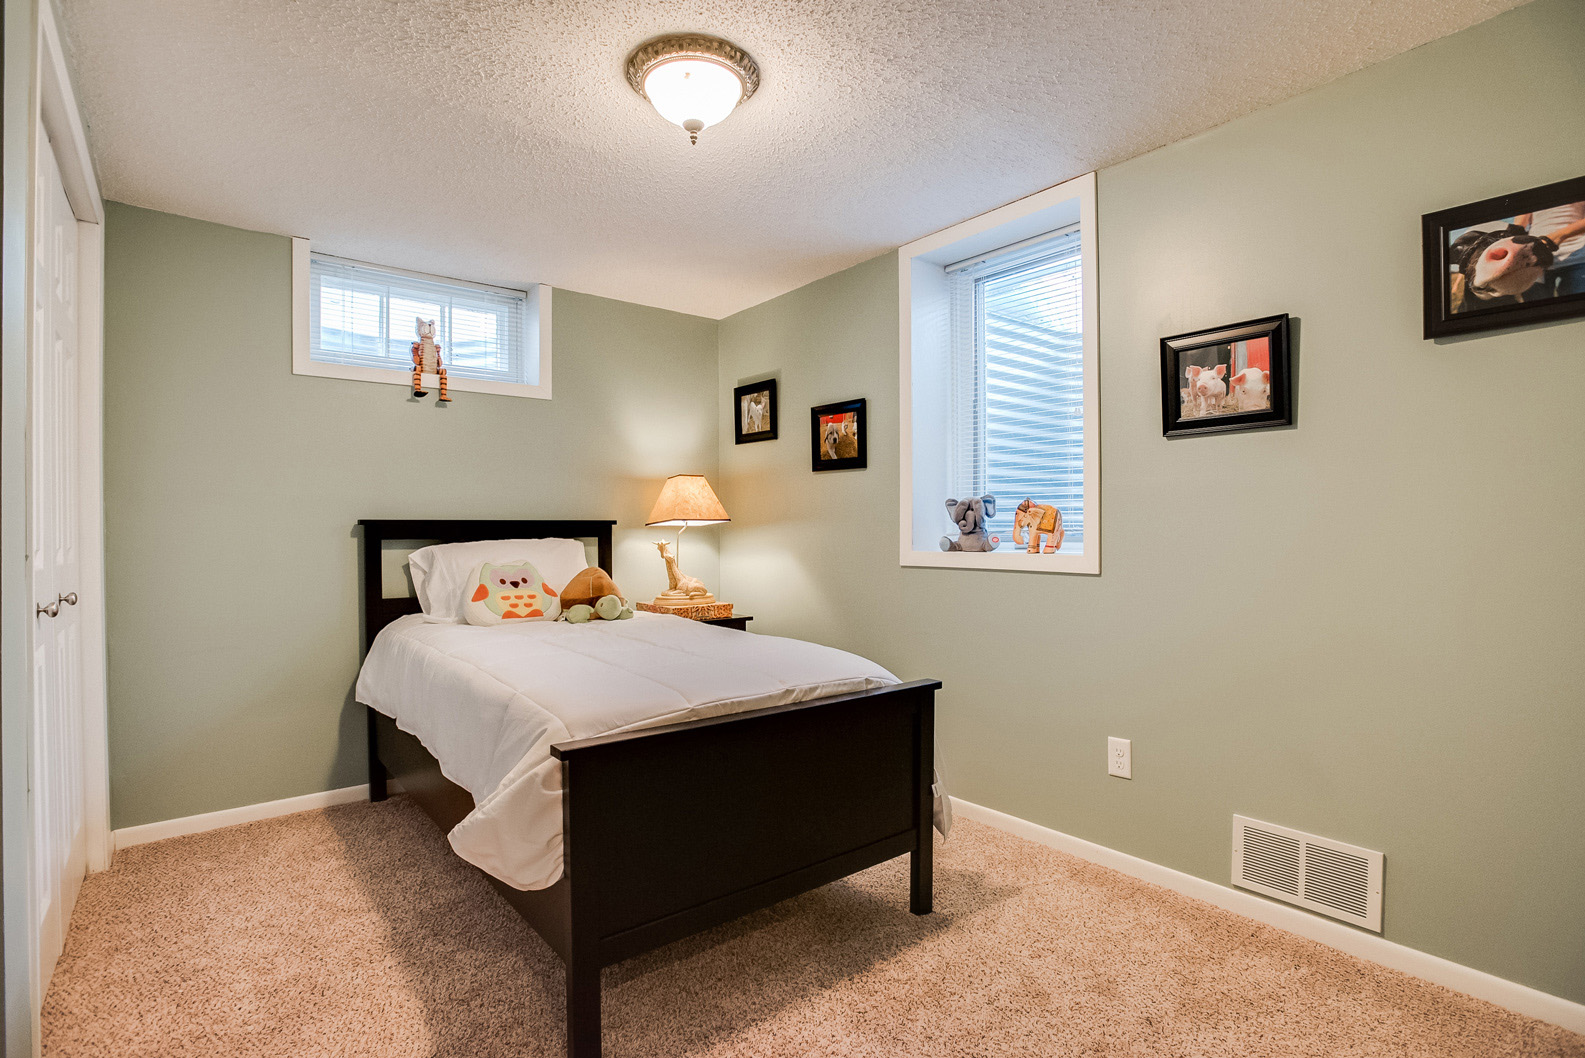 Adding a Bedroom to your Basement Remodel